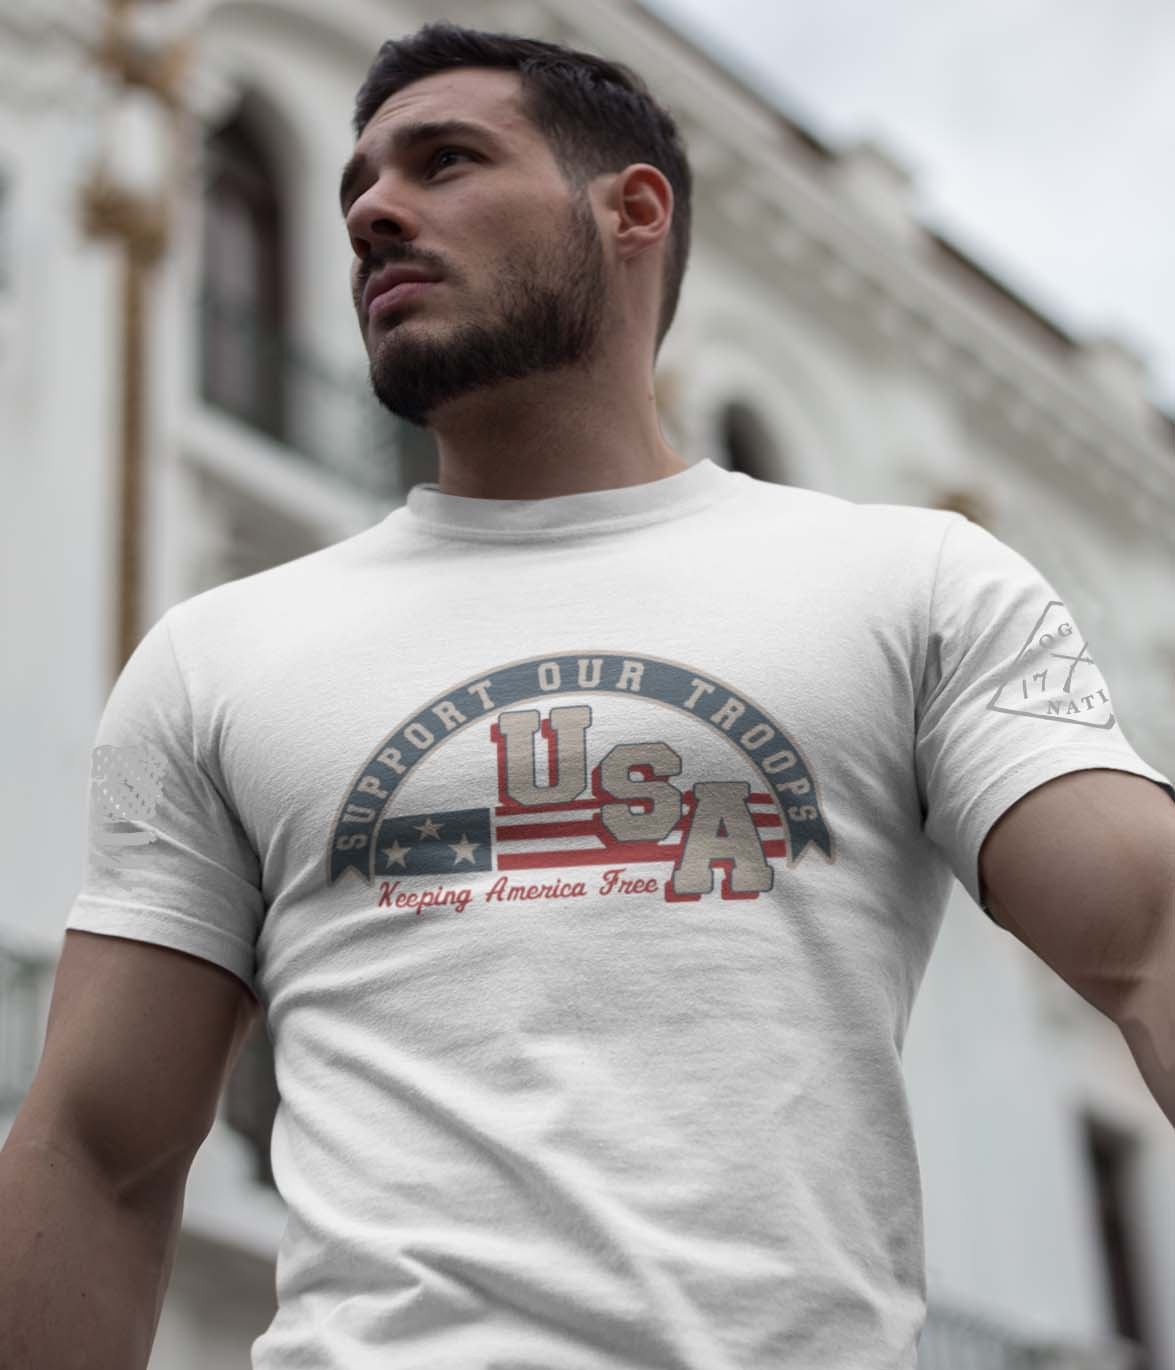 Support Our Troops on a Men's White T-Shirt